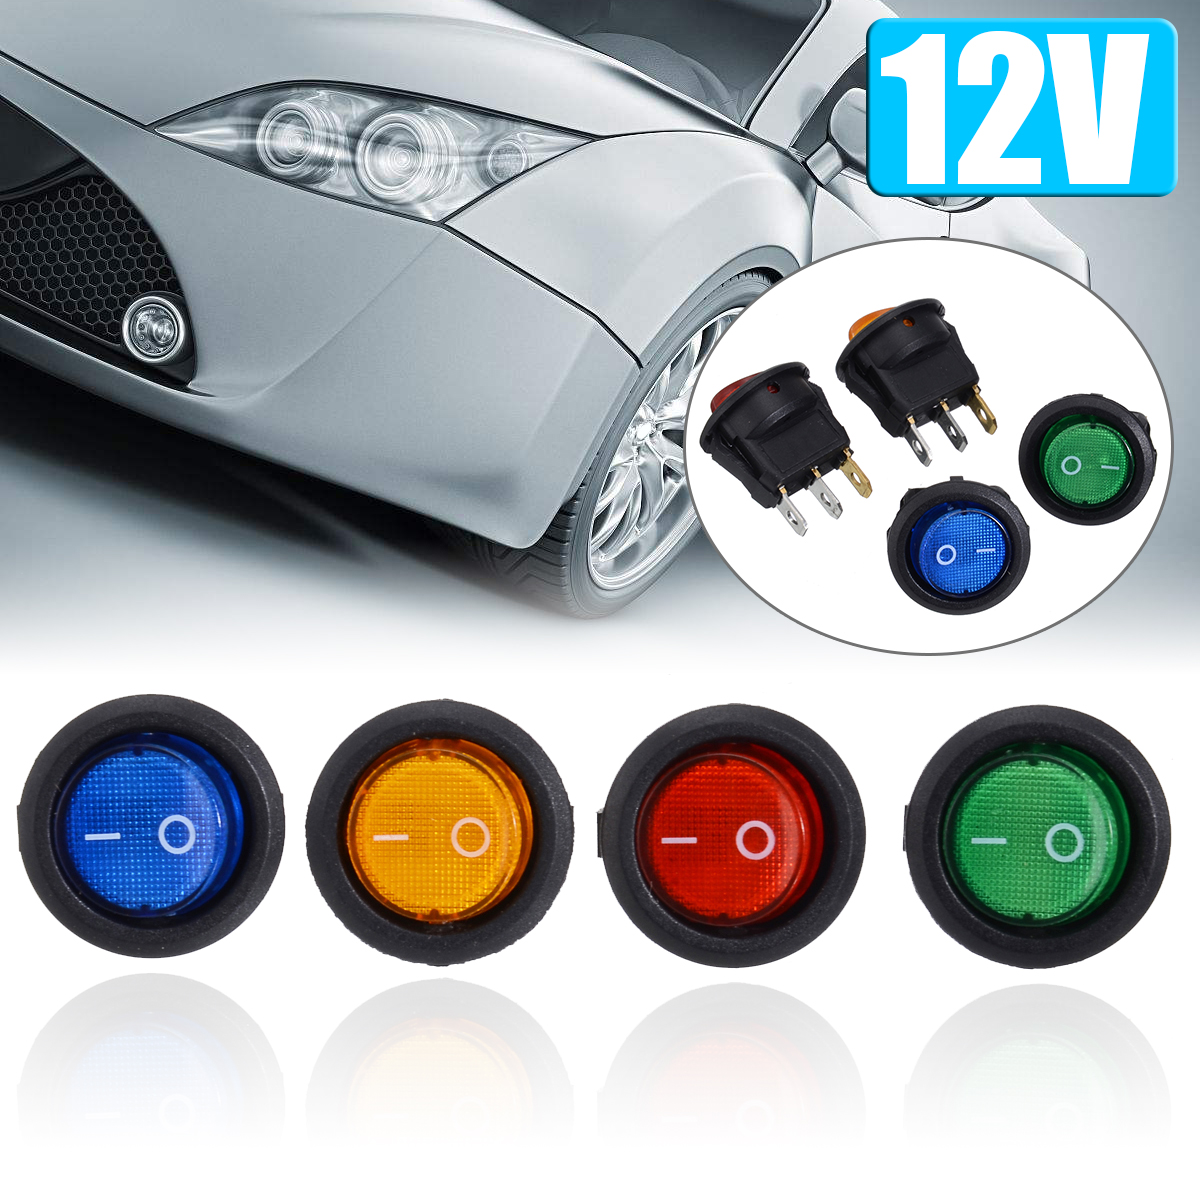 4Pcs/Set 12V 16A LED Auto Rocker Dot Boat LED Light Toggle Switch Red/Blue/Green/Yellow SPST ON/OFF Top Sales Electric Controls-in Car Switches & Relays from Automobiles & Motorcycles